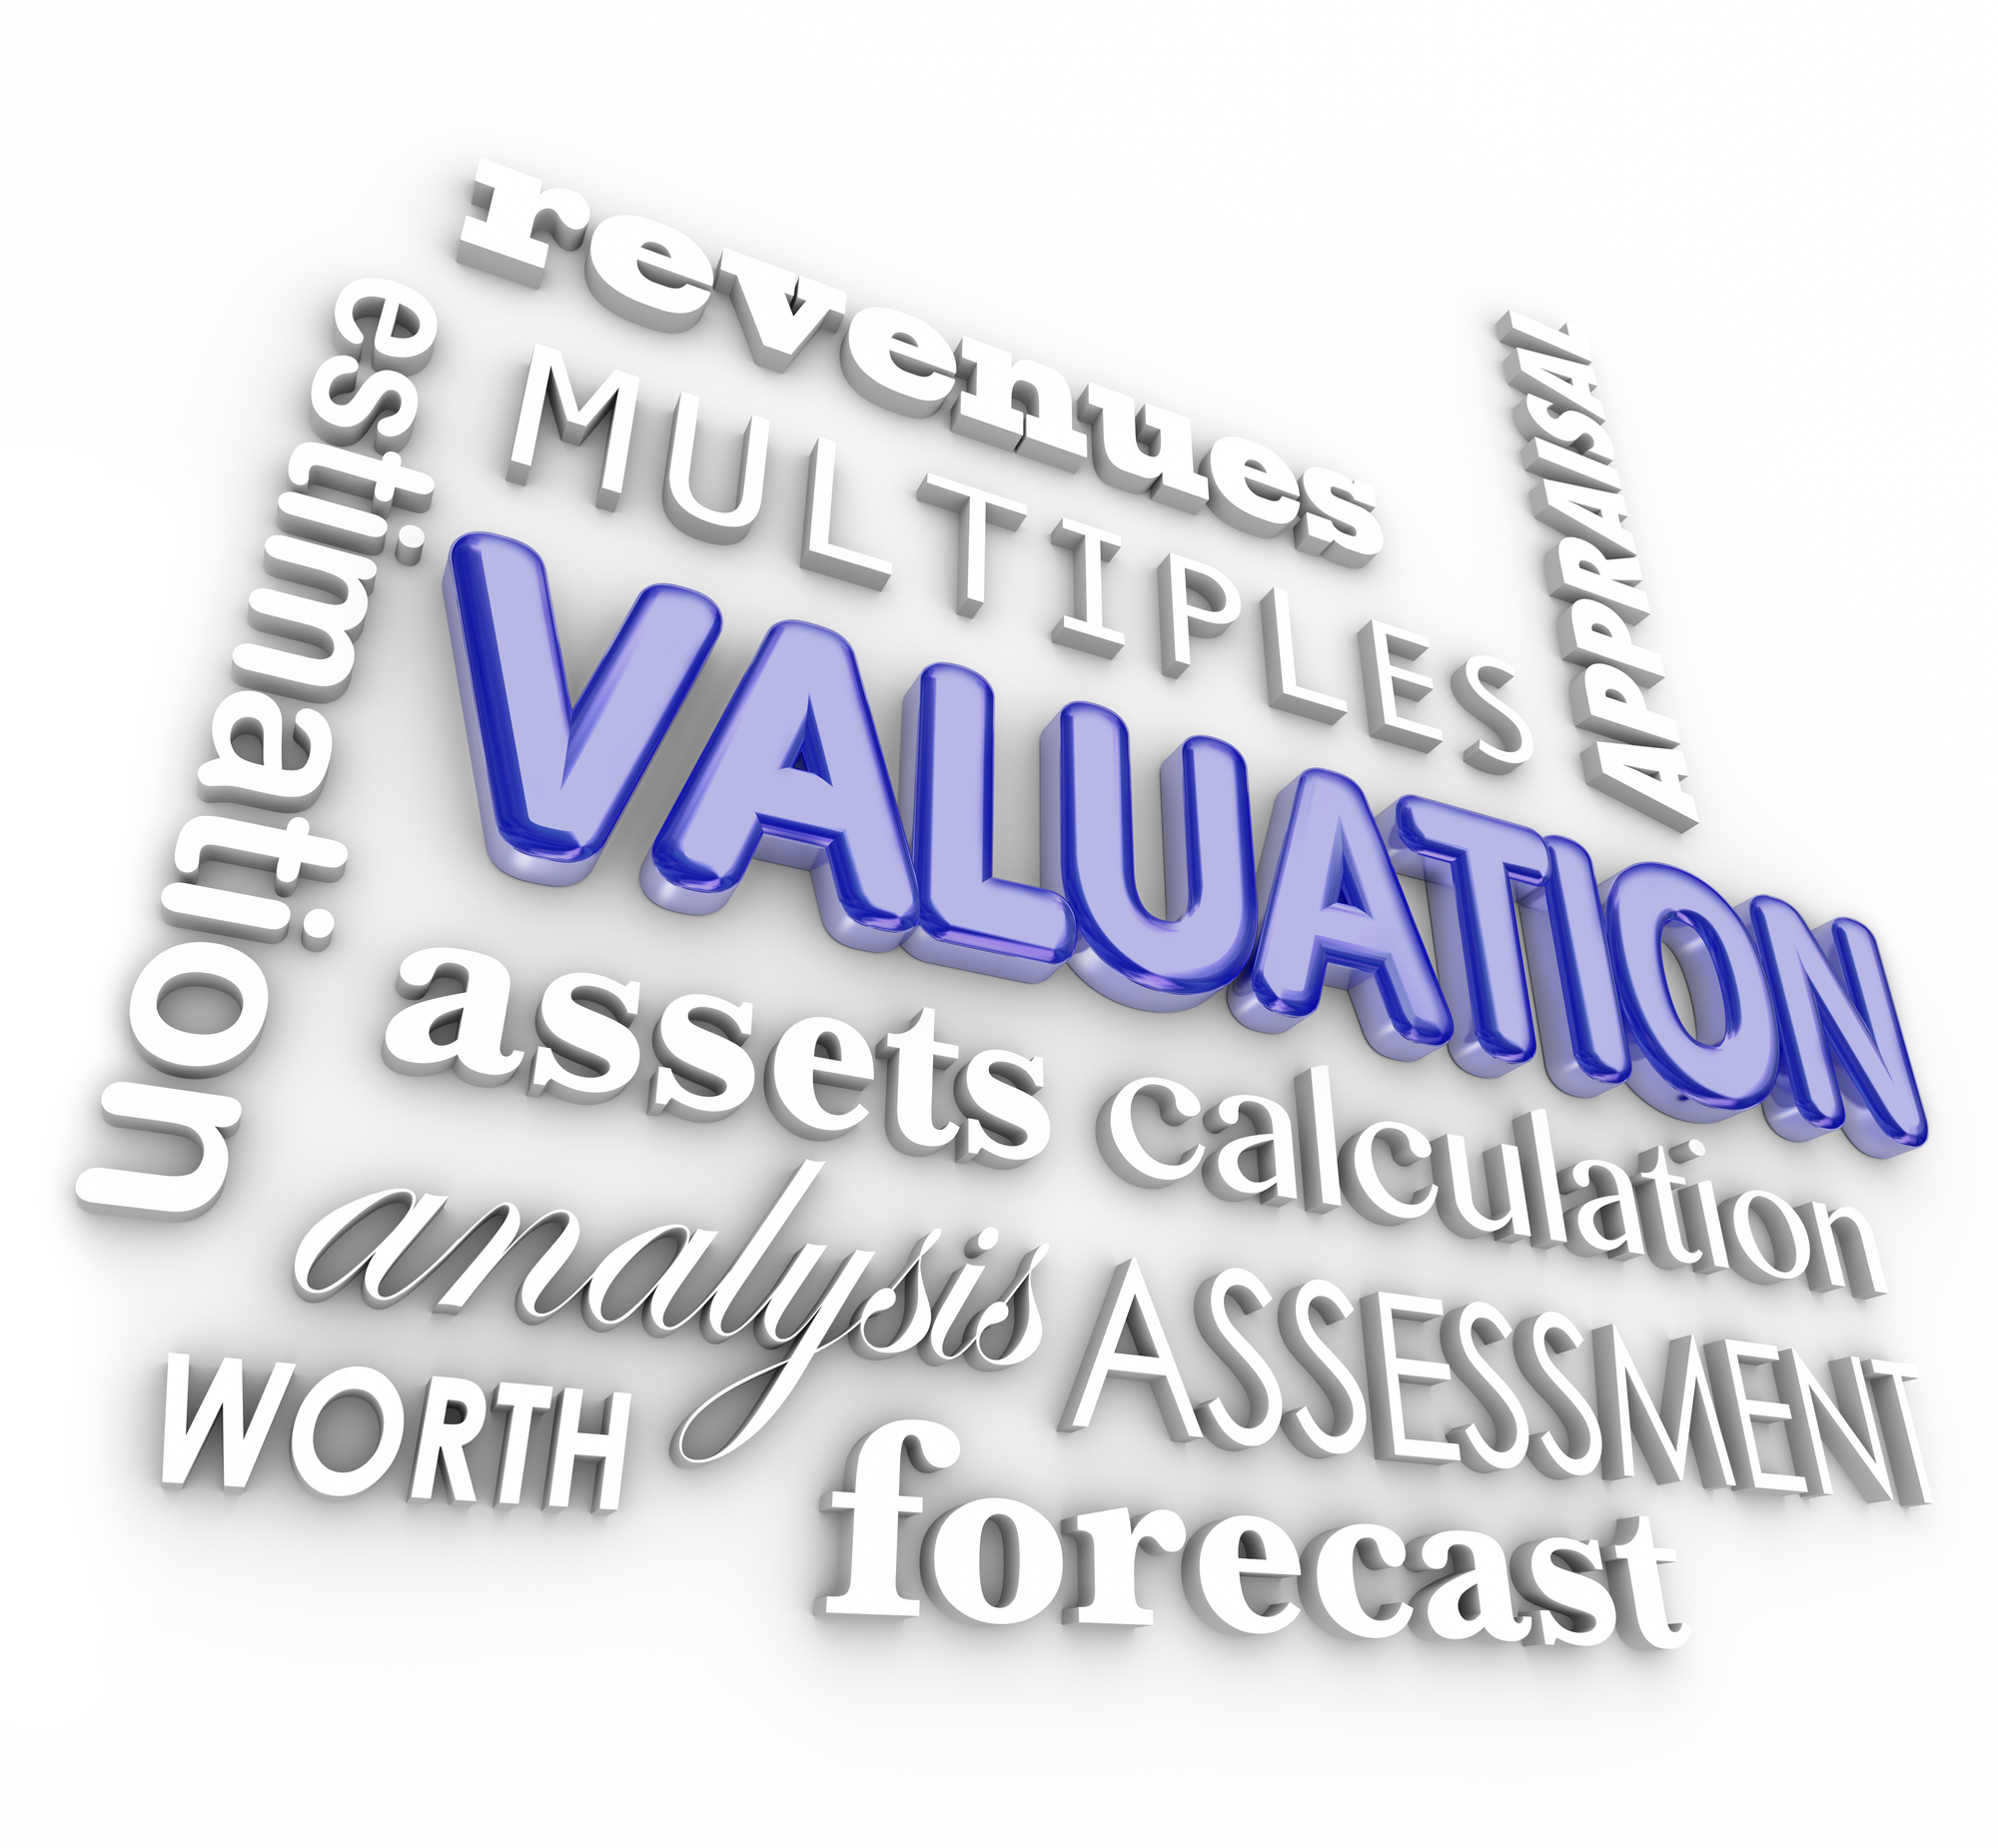 SBA Requirements for Business Valuation